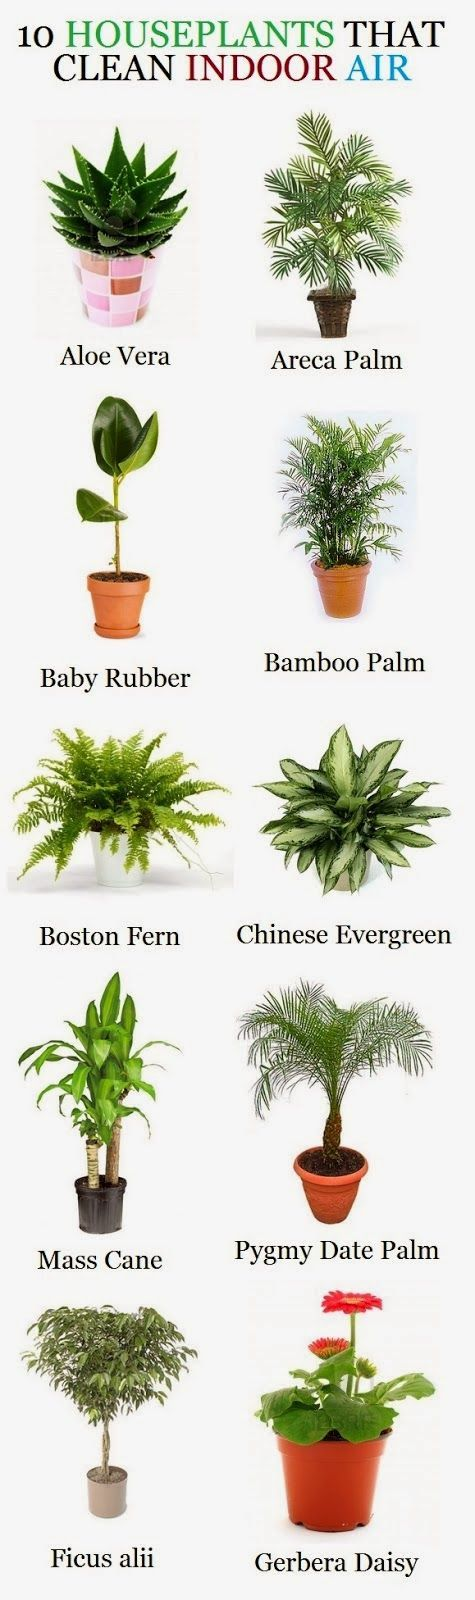 10 Houseplants that clean indoor air. I don't have the greenest thumb but I love house plants.